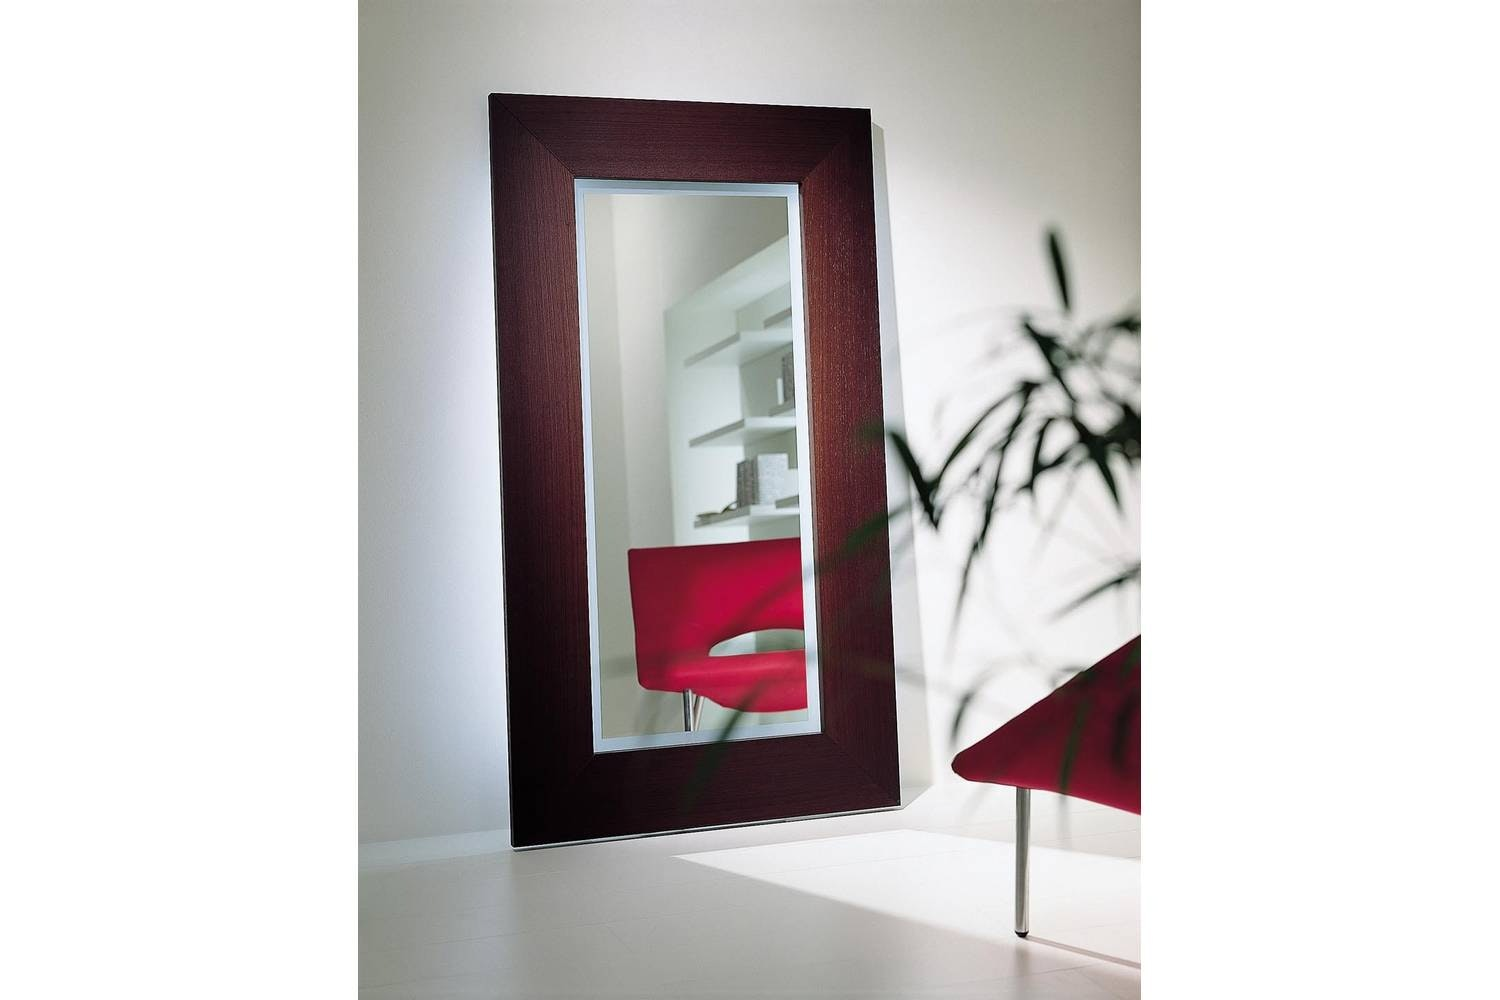 New Concepts Mirror by Lodovico Acerbis for Acerbis